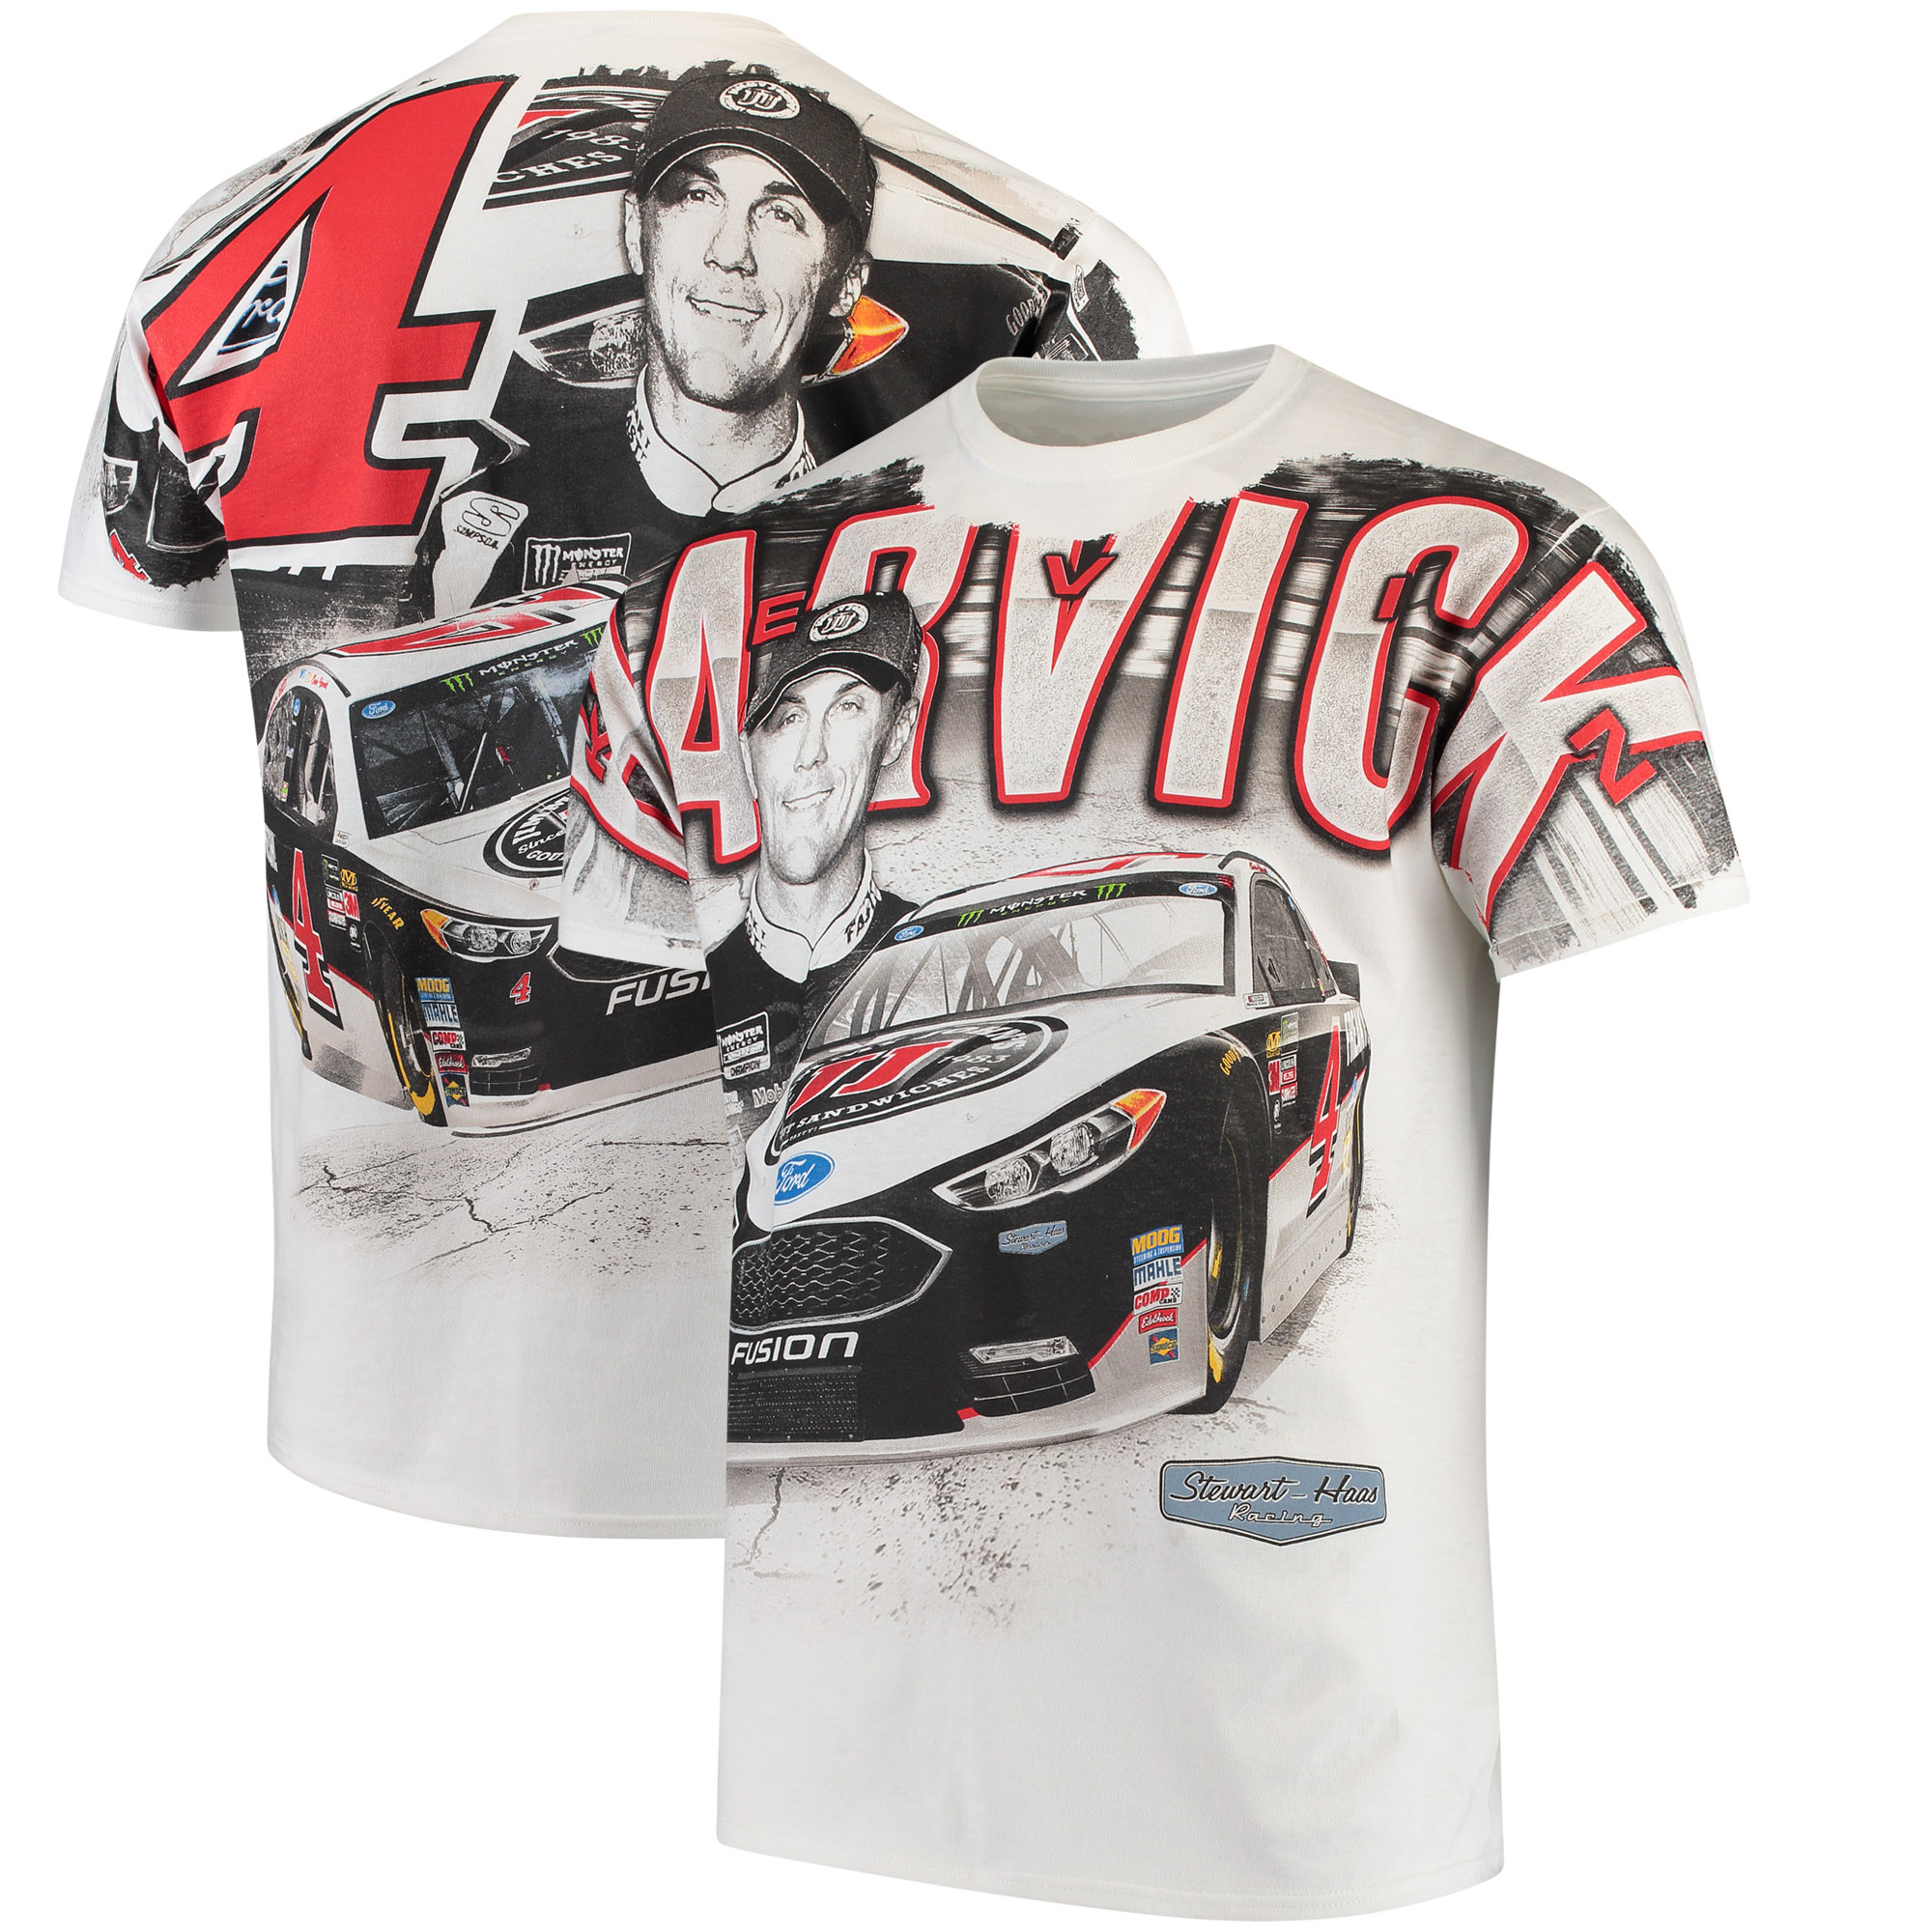 Kevin Harvick Stewart-Haas Racing Team Collection Jimmy John's Total Print T-Shirt - White